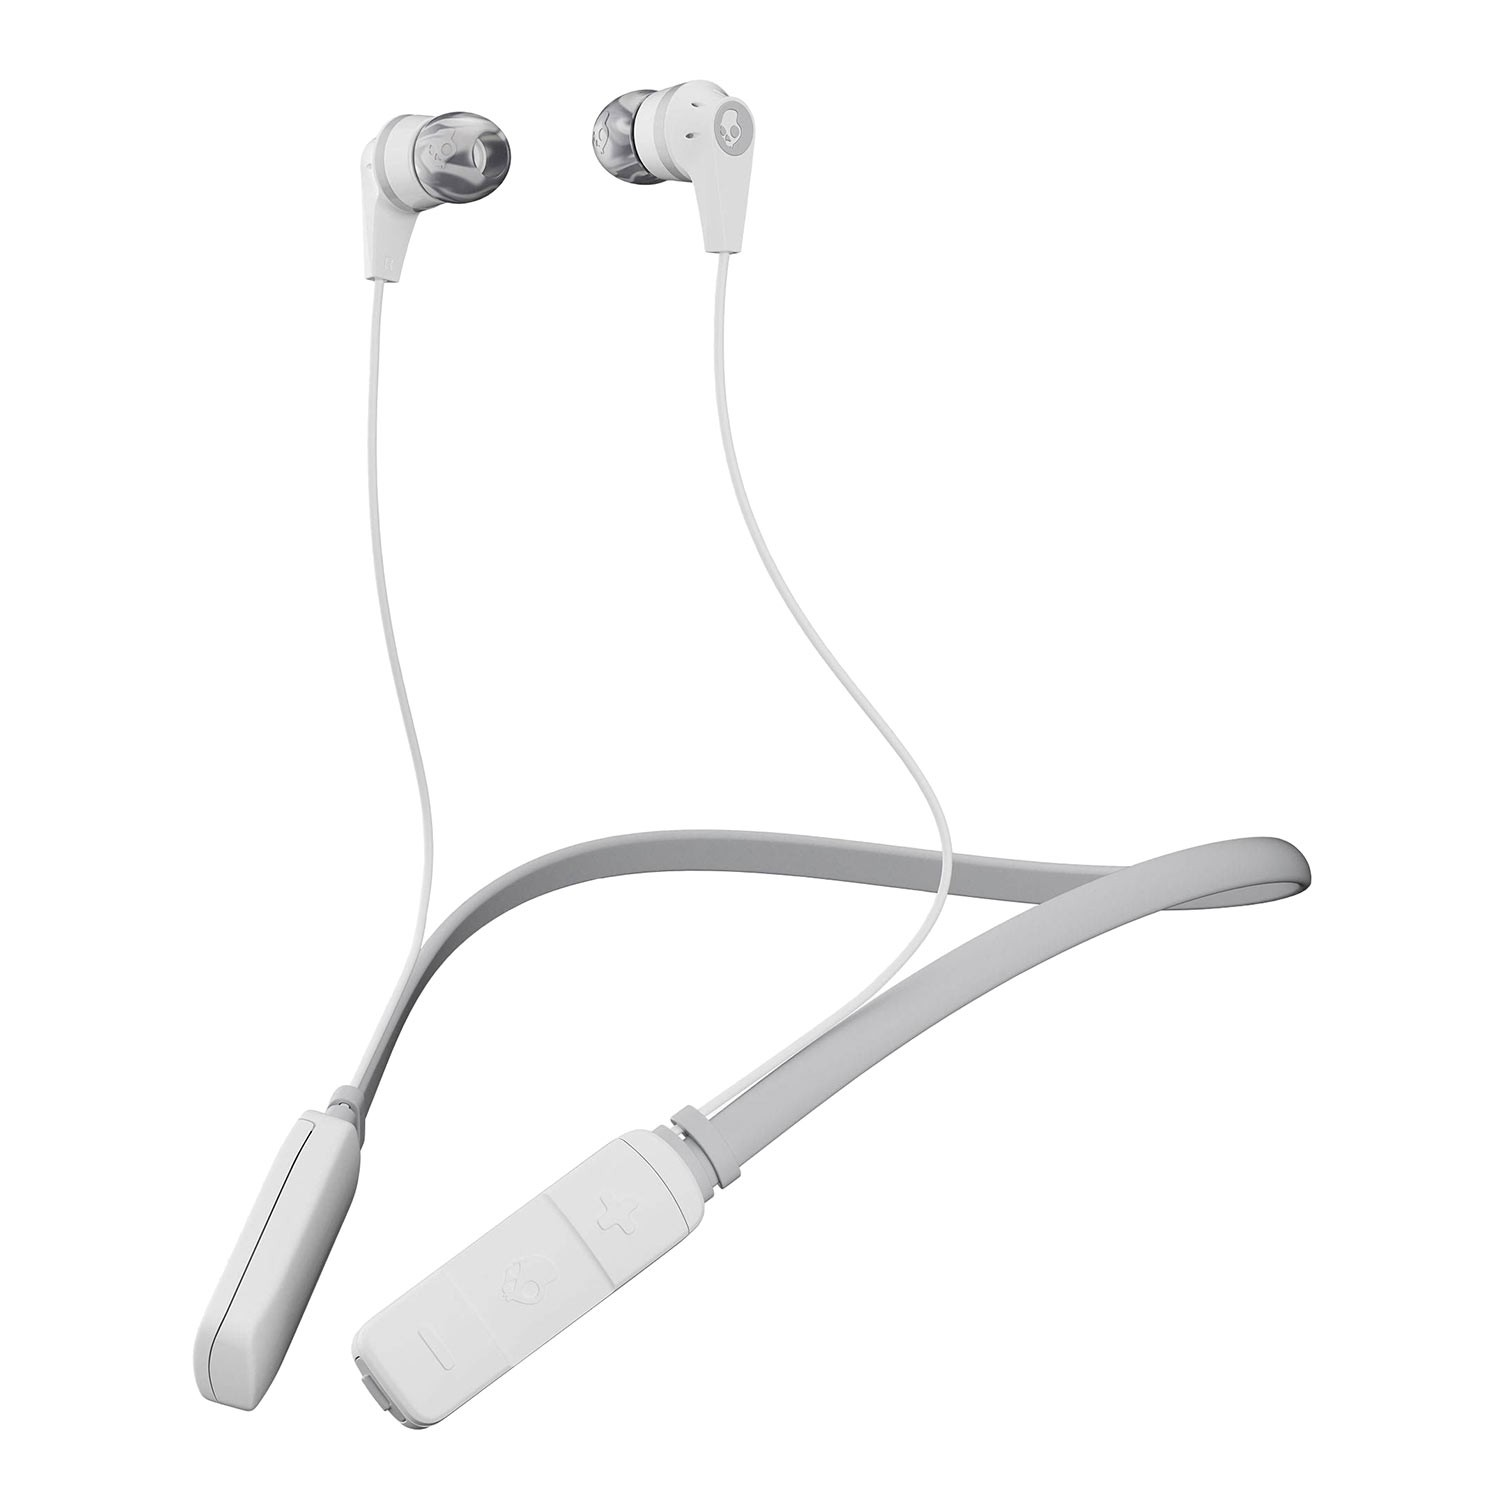 Sluchátka Skullcandy Ink'd Wireless white/grey